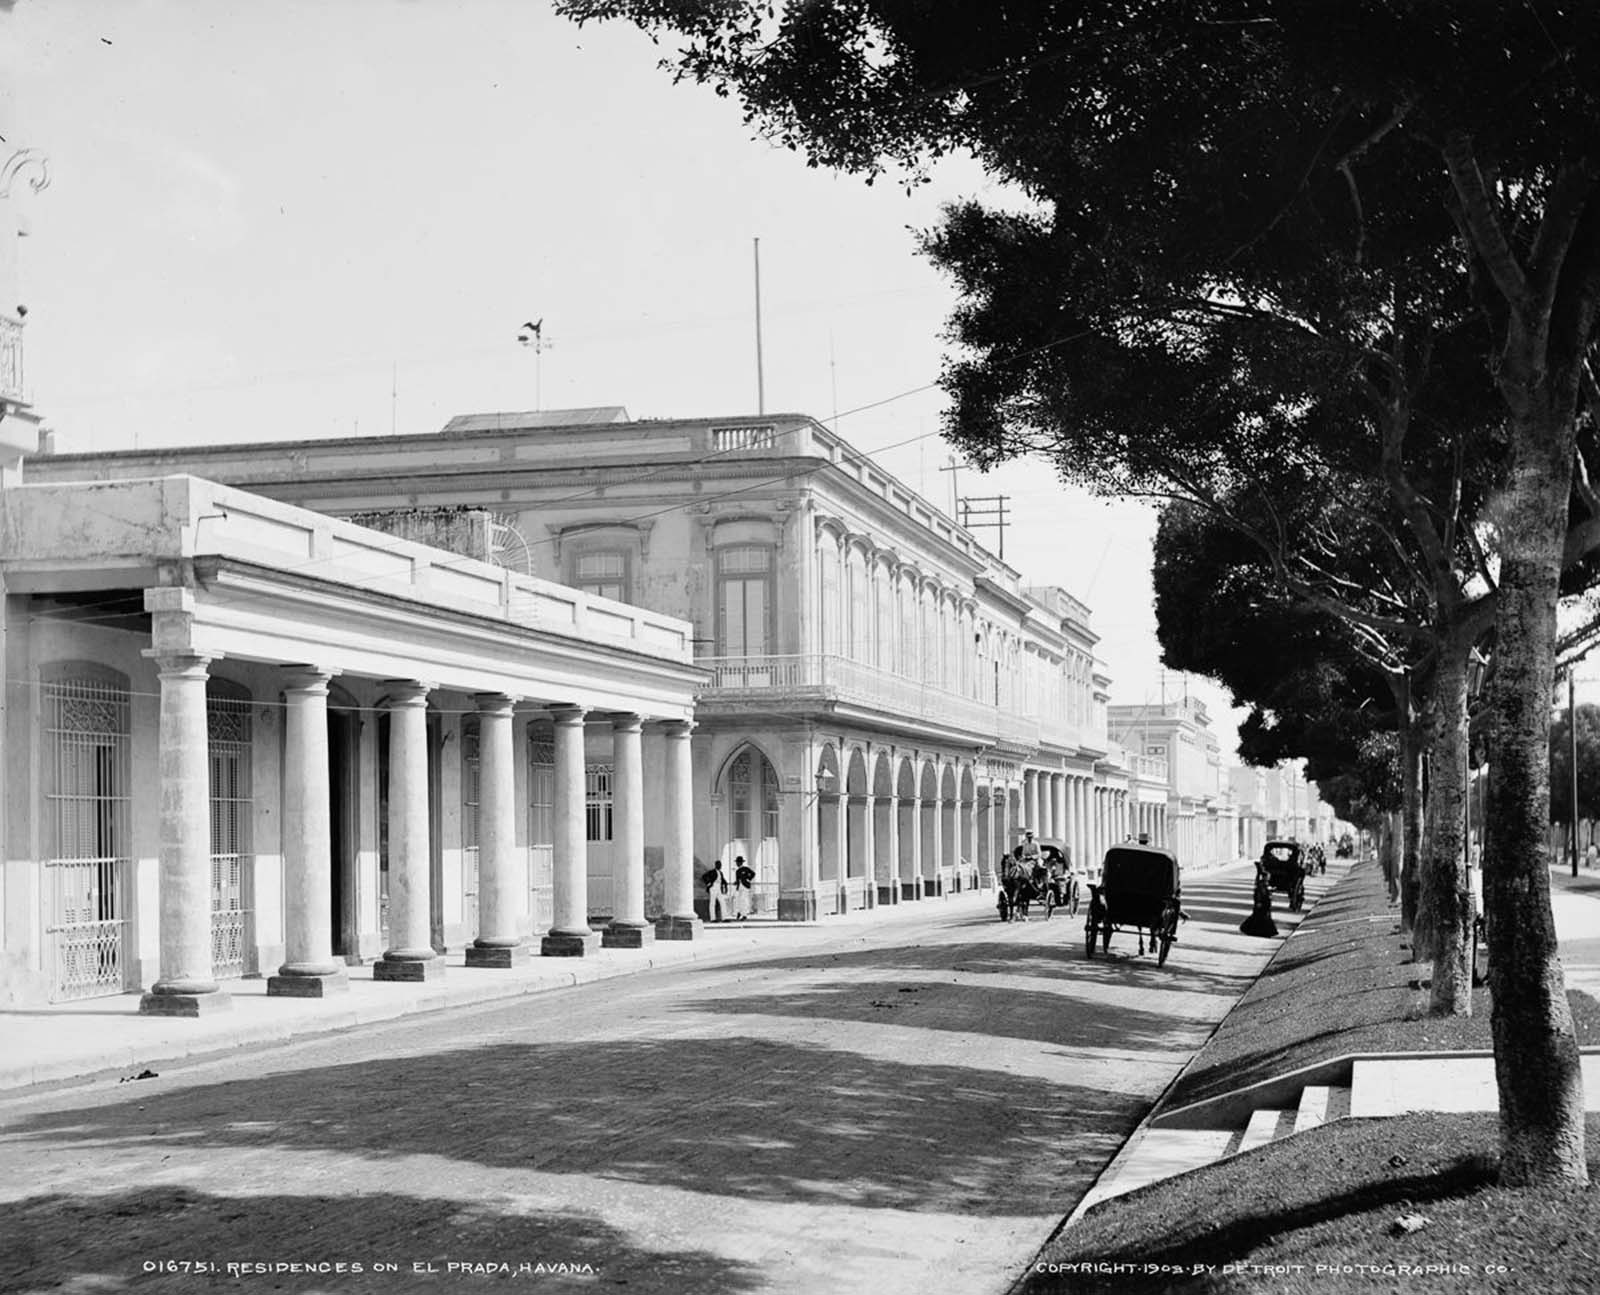 Residences on Paseo del Prado. 1903.